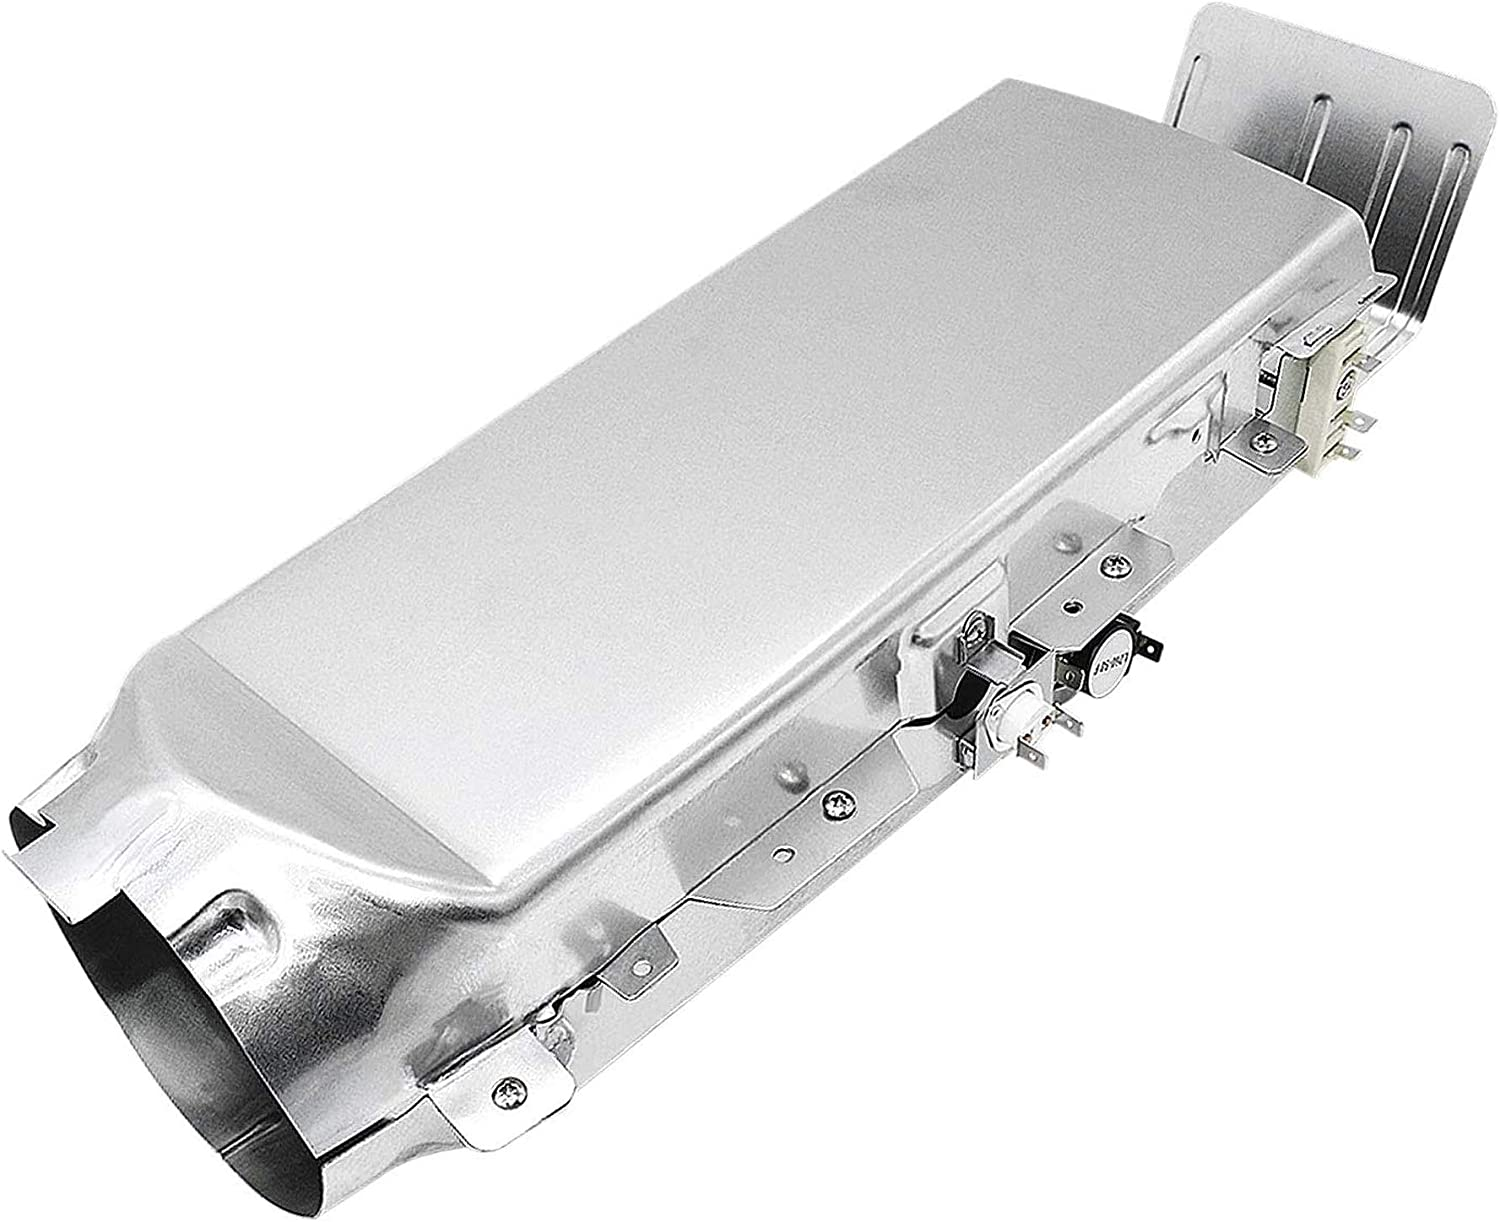 DC93-00154A Heating Element Assembly by Romalon Replacement For